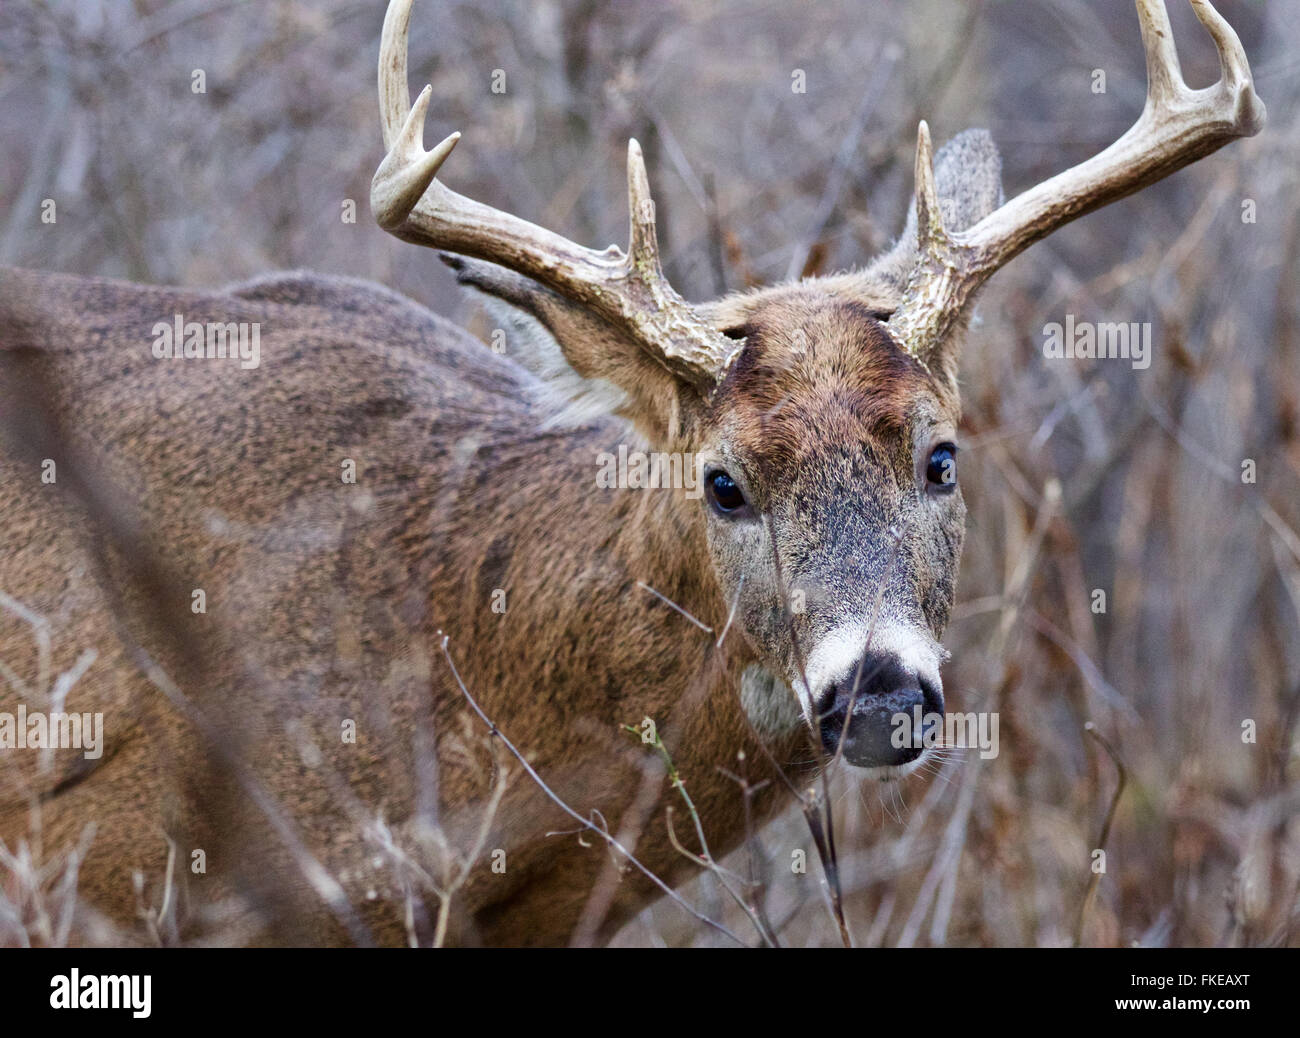 Closeup of the male deer with horns - Stock Image